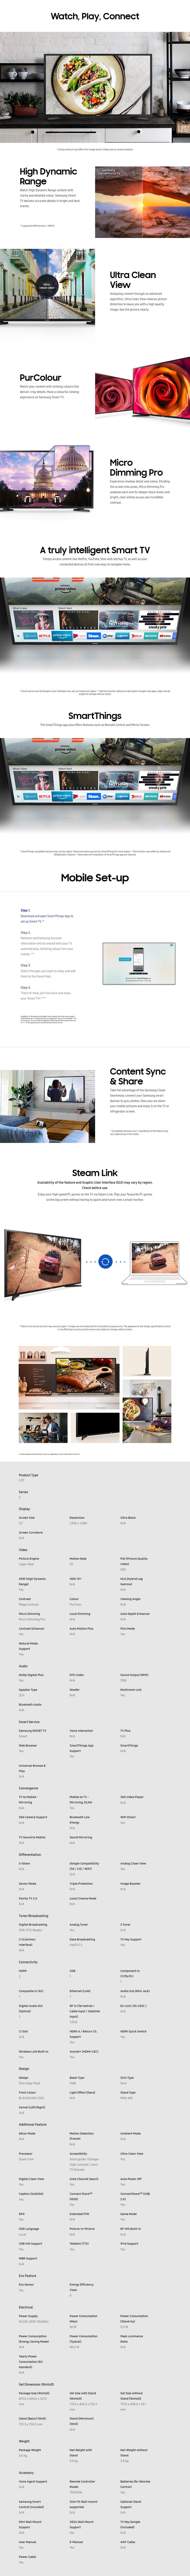 "Samsung Series 5 N5300 32"" HD Smart LED TV - Desktop Overview 1"